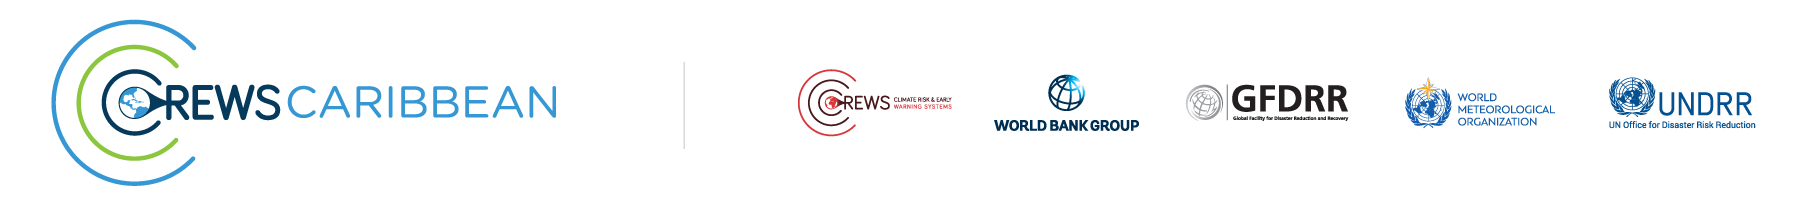 CREWS Caribbean partners banner